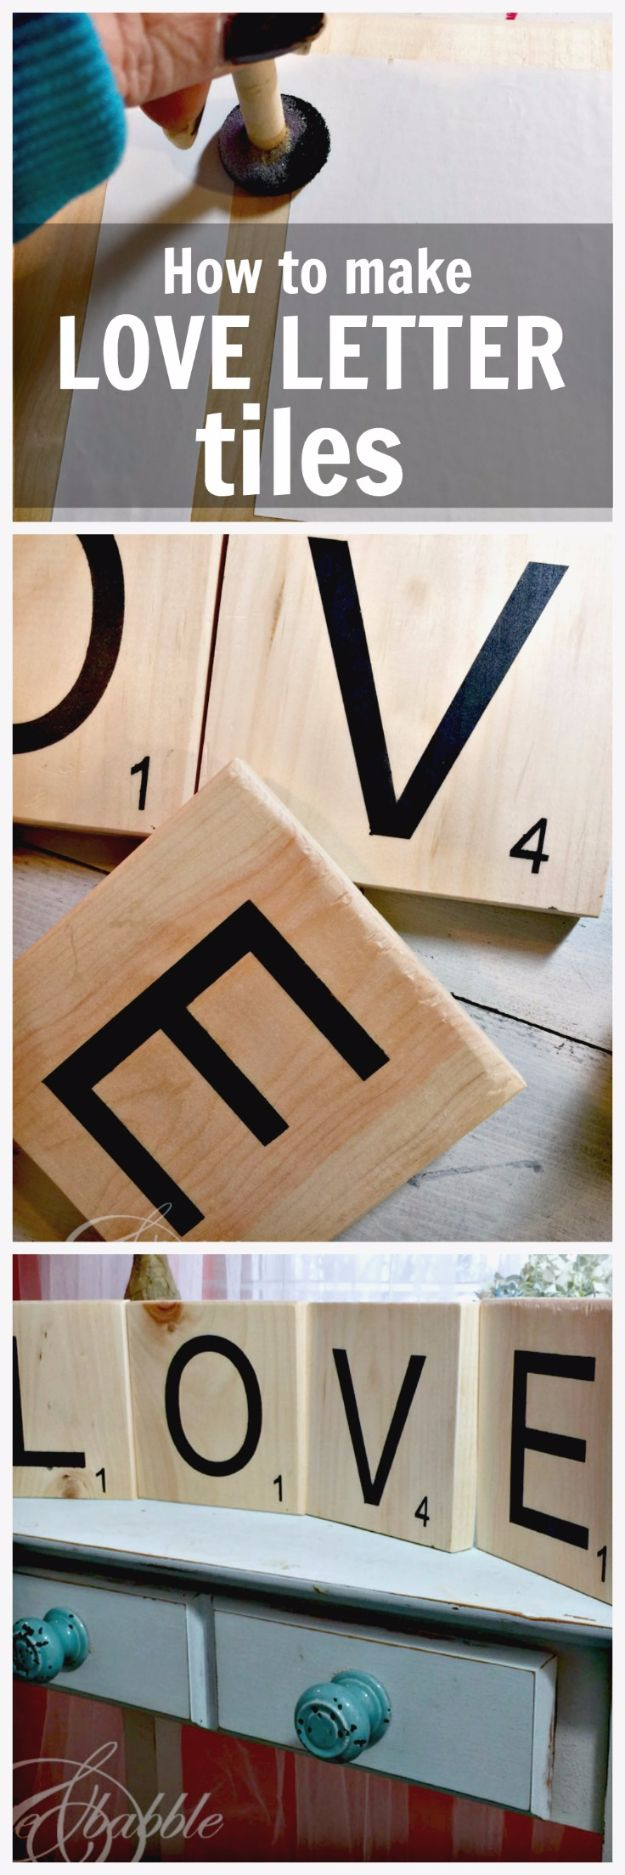 DIY Wall Letters and Word Signs - Love Letter Tiles - Initials Wall Art for Creative Home Decor Ideas - Cool Architectural Letter Projects and Wall Art Tutorials for Living Room Decor, Bedroom Ideas. Girl or Boy Nursery. Paint, Glitter, String Art, Easy Cardboard and Rustic Wooden Ideas - DIY Projects and Crafts by DIY JOY #diysigns #diyideas #diyhomedecor